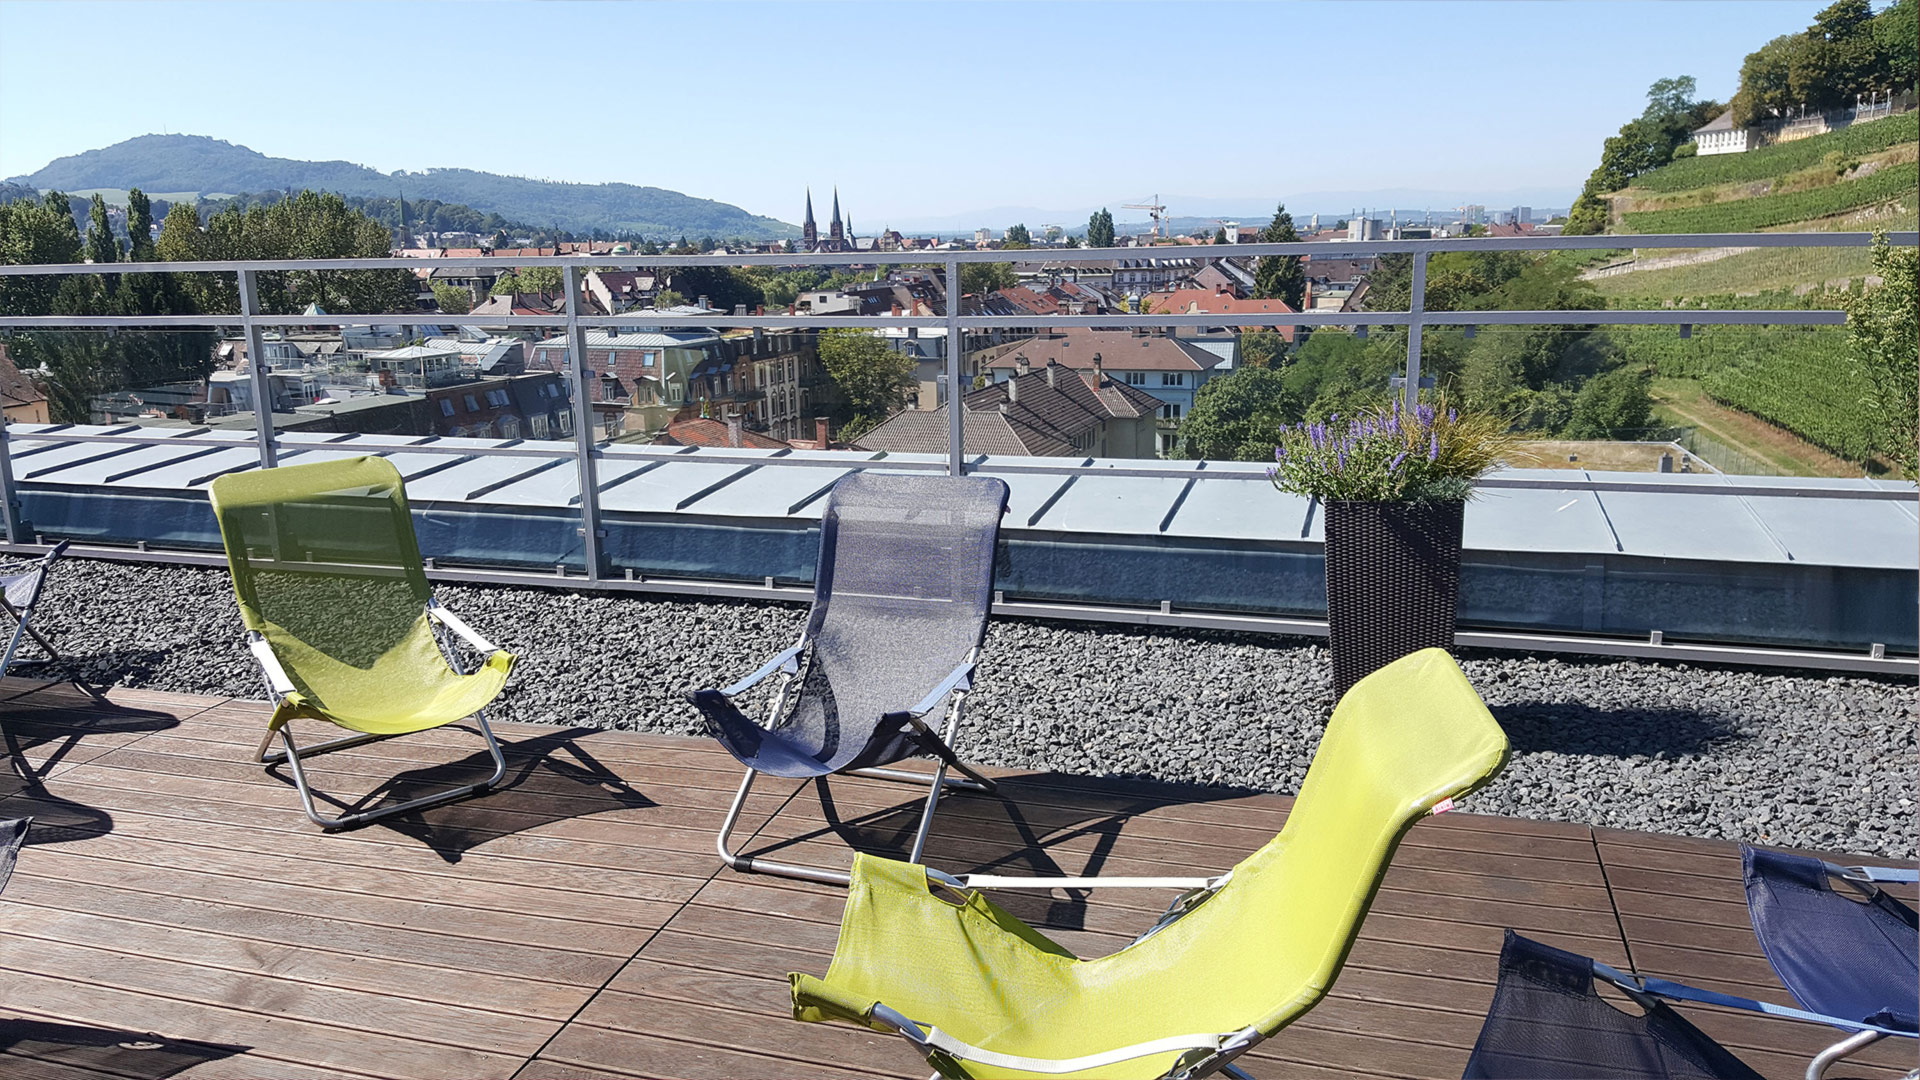 Rooftop-terrace with view over the old city center